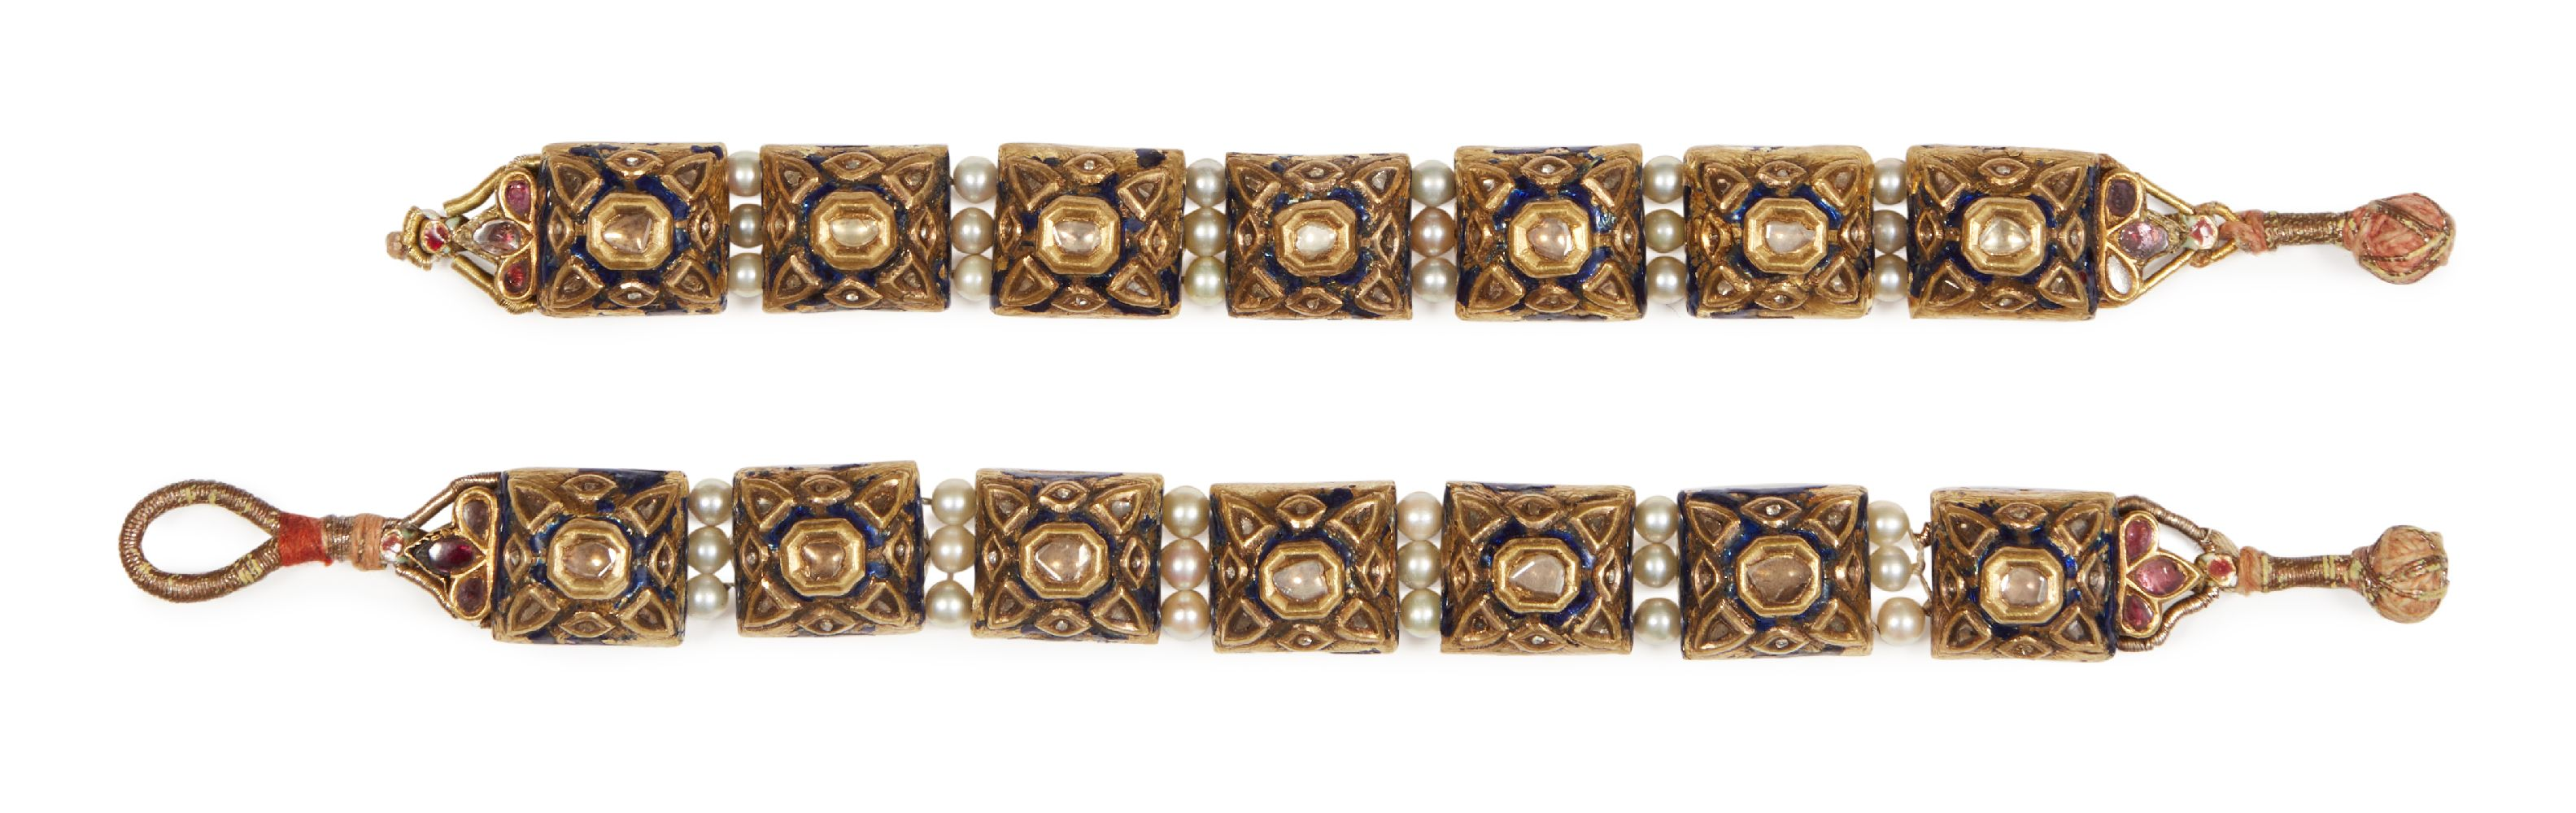 Lot 448 - A pair of gold pearl and gem-set enamelled bracelets, India, late 19th-early 20th century, each